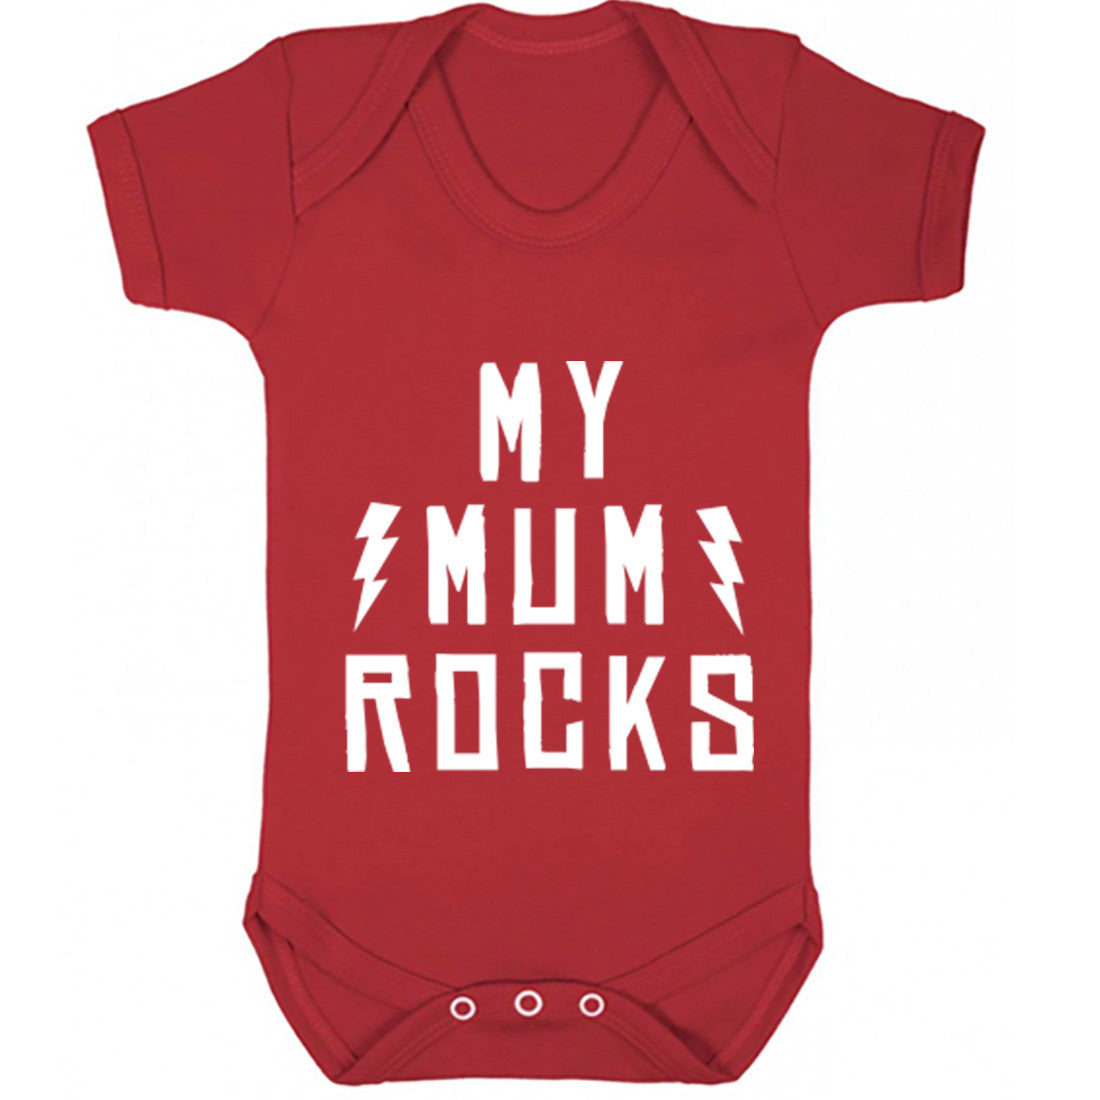 My Mum Rocks Baby Vest K1199 - Illustrated Identity Ltd.